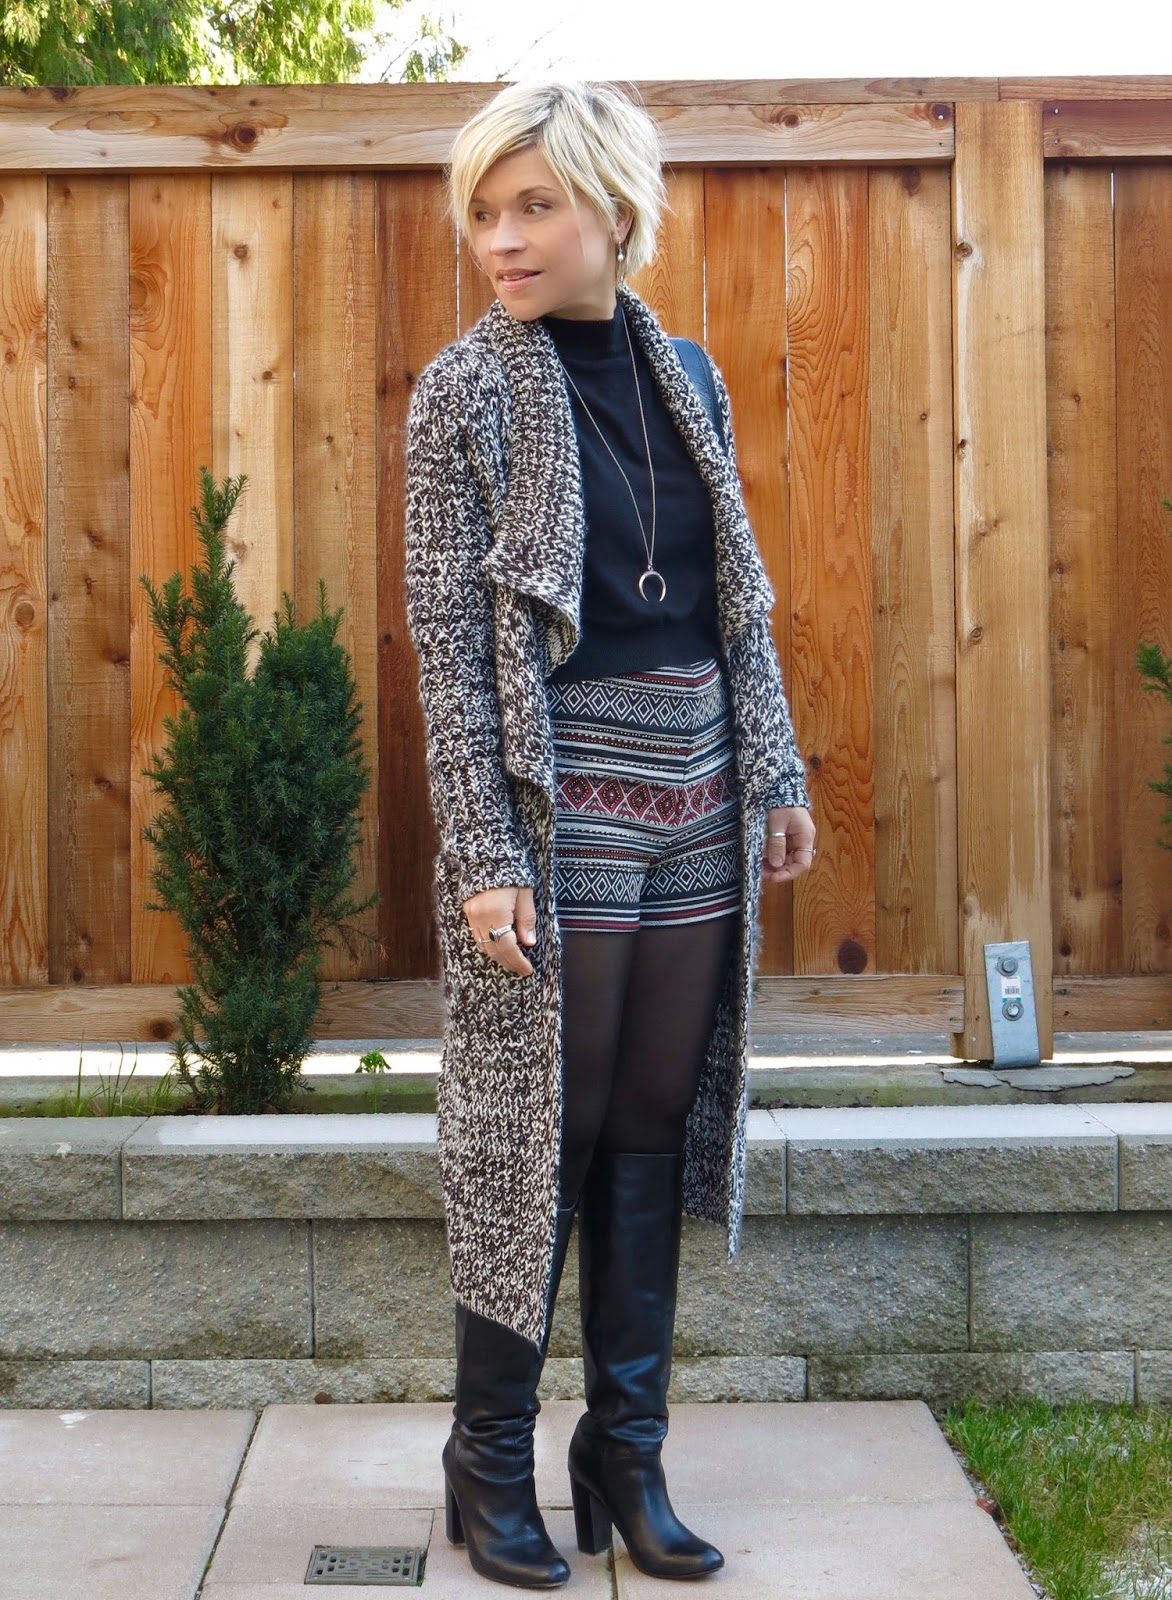 styling embellished shorts with tights, knee boots, and a long cardigan